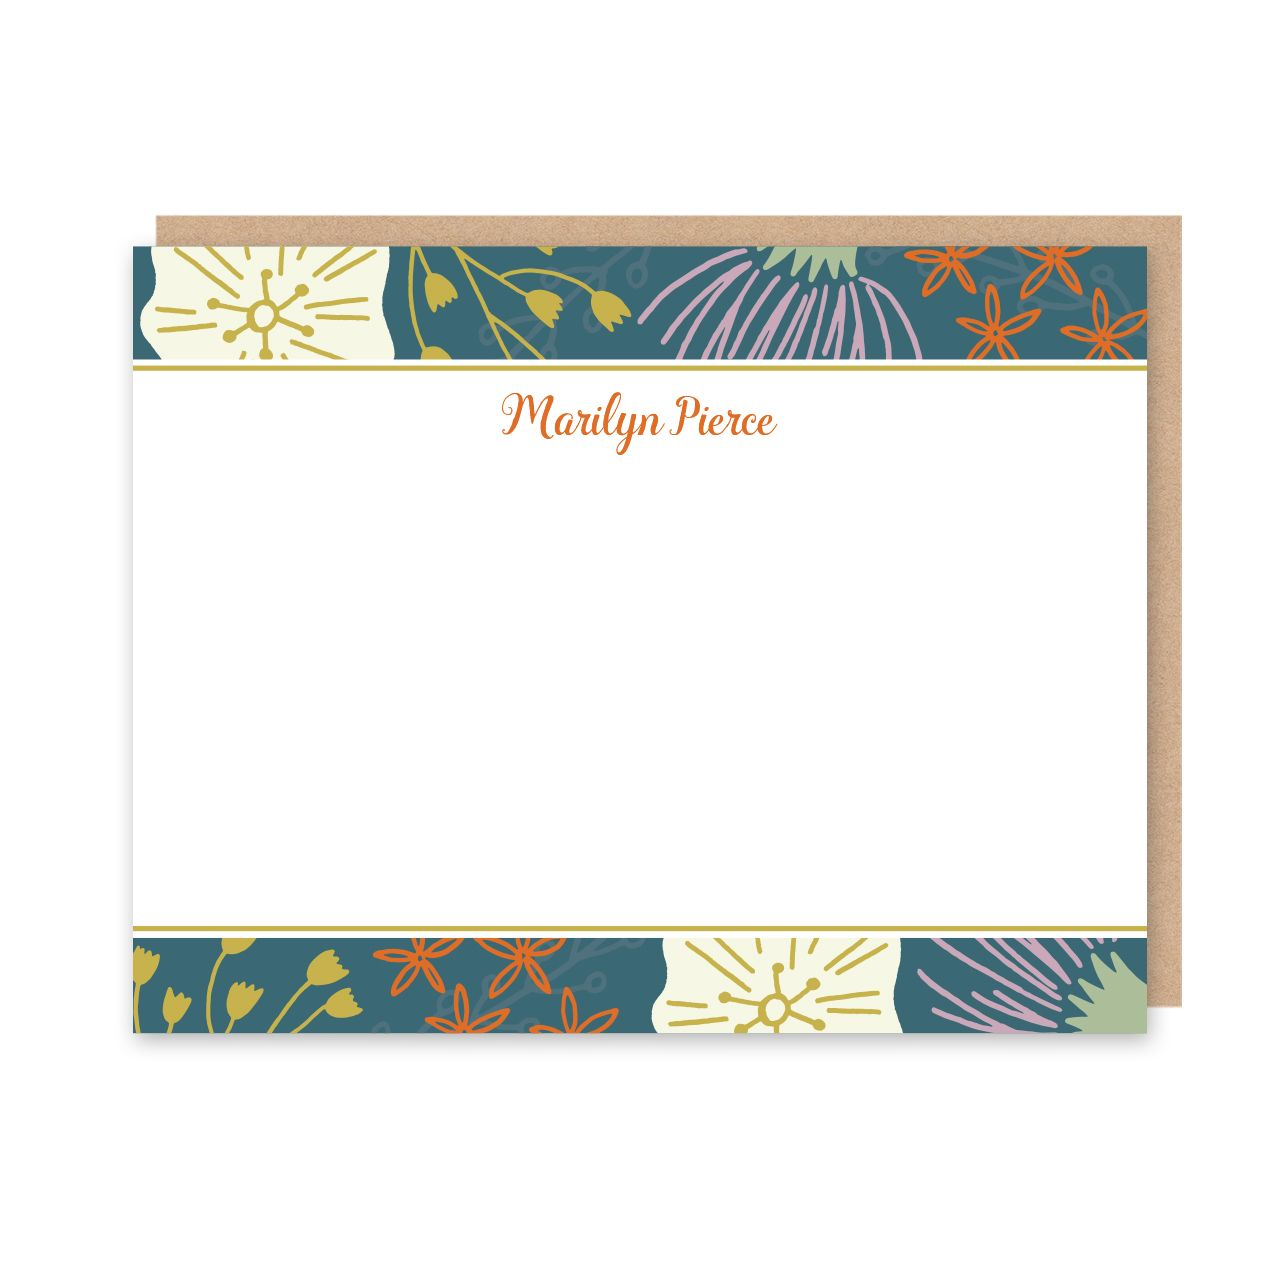 wildflowers personalized flat note card stationery l peony hill press - Personalized Flat Note Cards